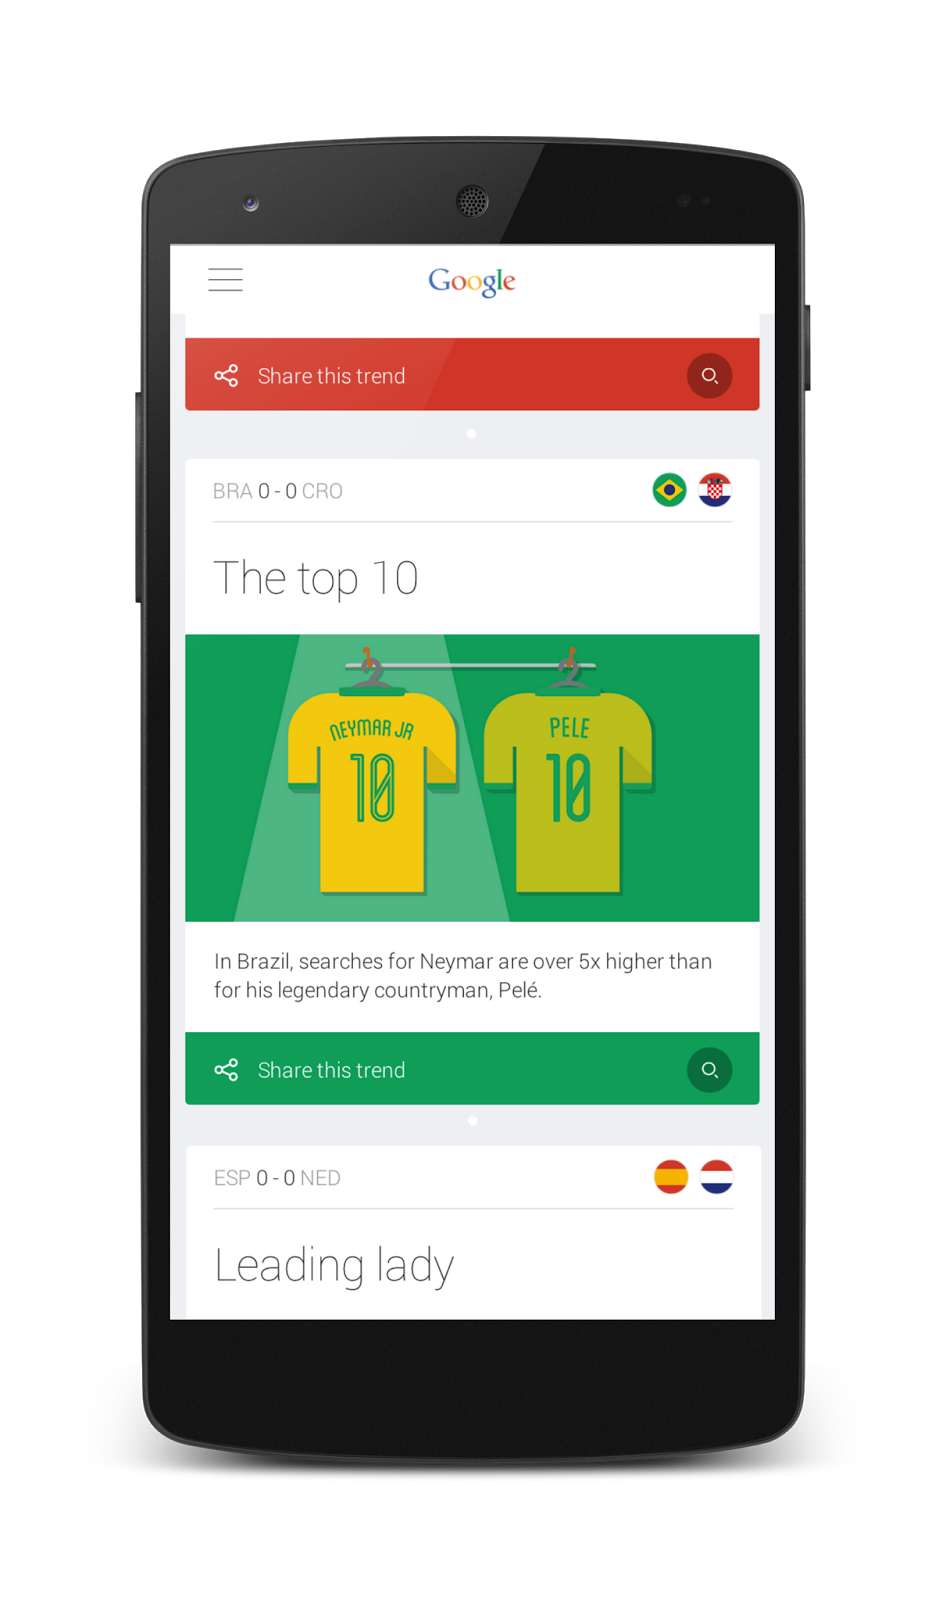 Official Google Blog Introducing A New Youtube App For: Official Google Blog: From Kickoff To The Final Goal